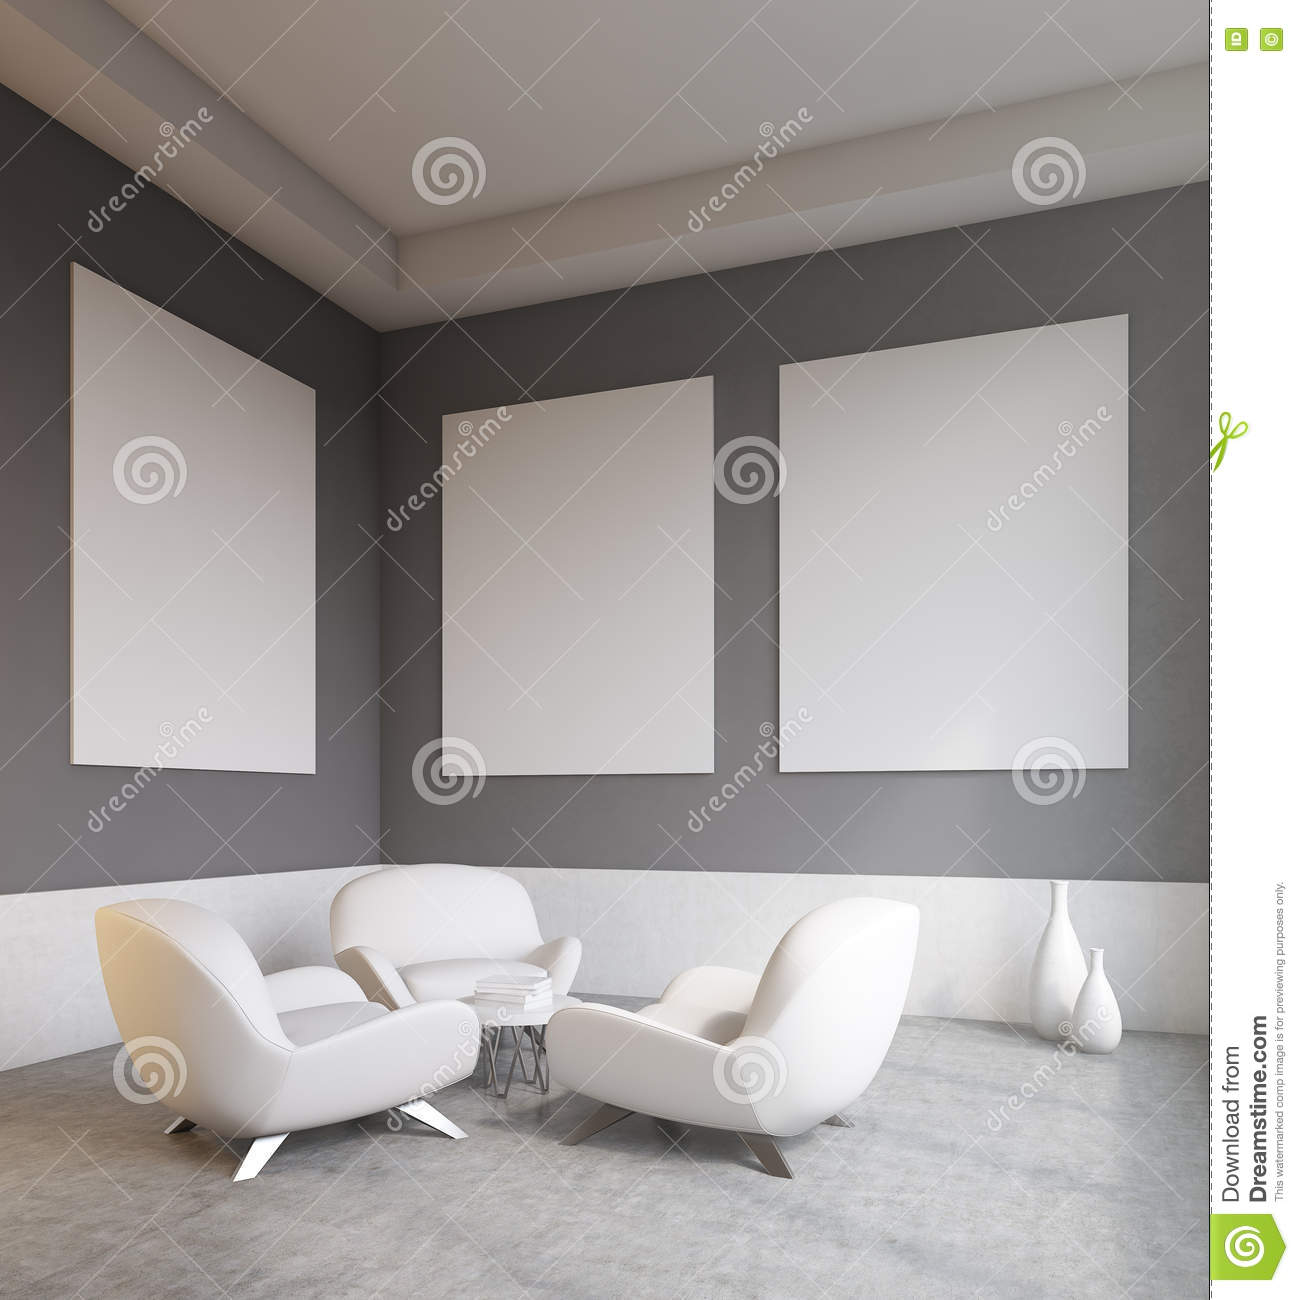 Living room with white sofas stock illustration image for Living office concept